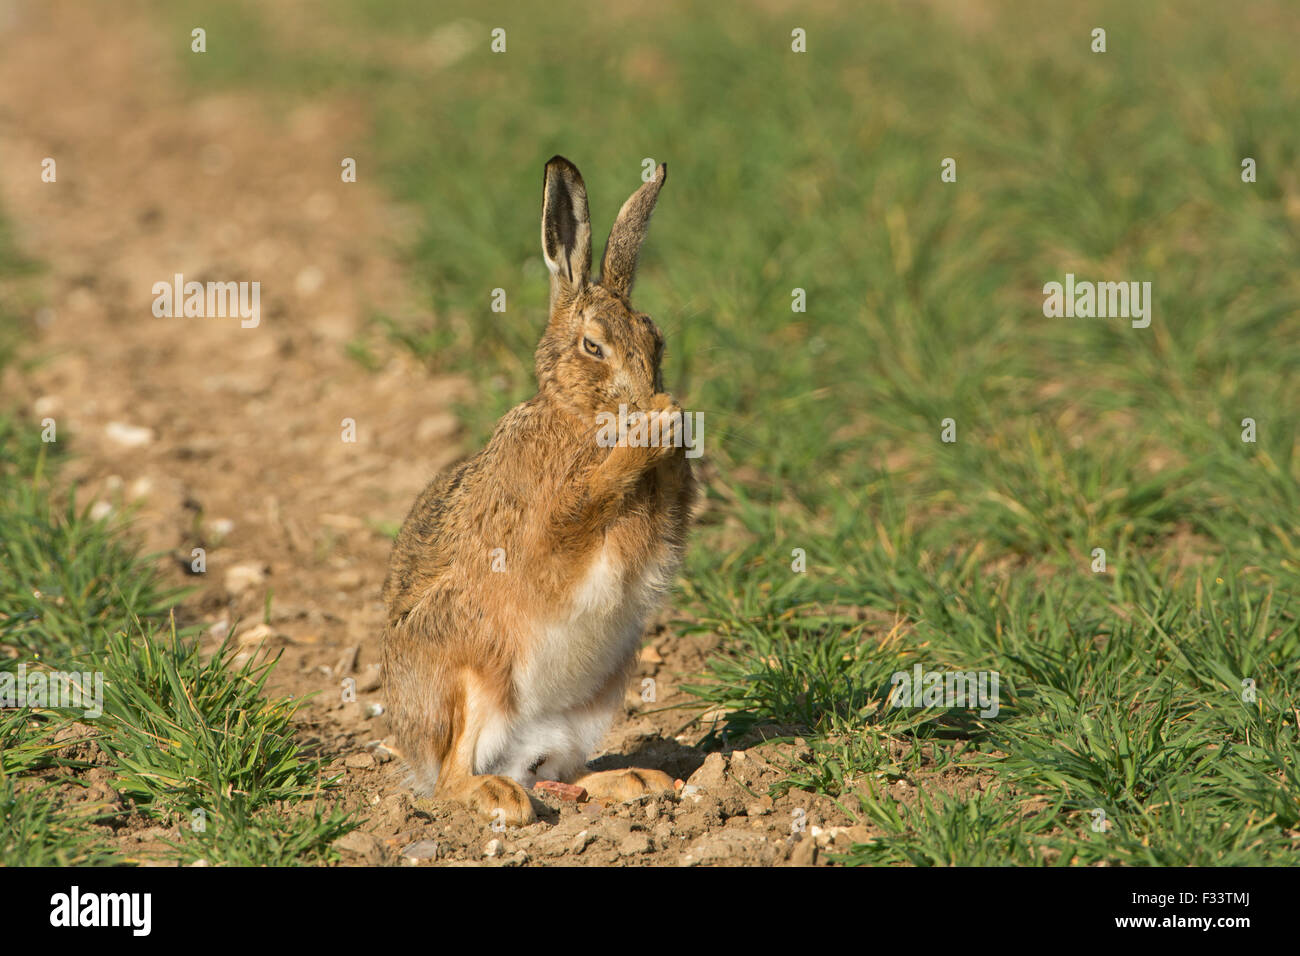 Braun Feldhase Lepus Europaeus in Winterweizen Field Norfolk UK März Stockbild